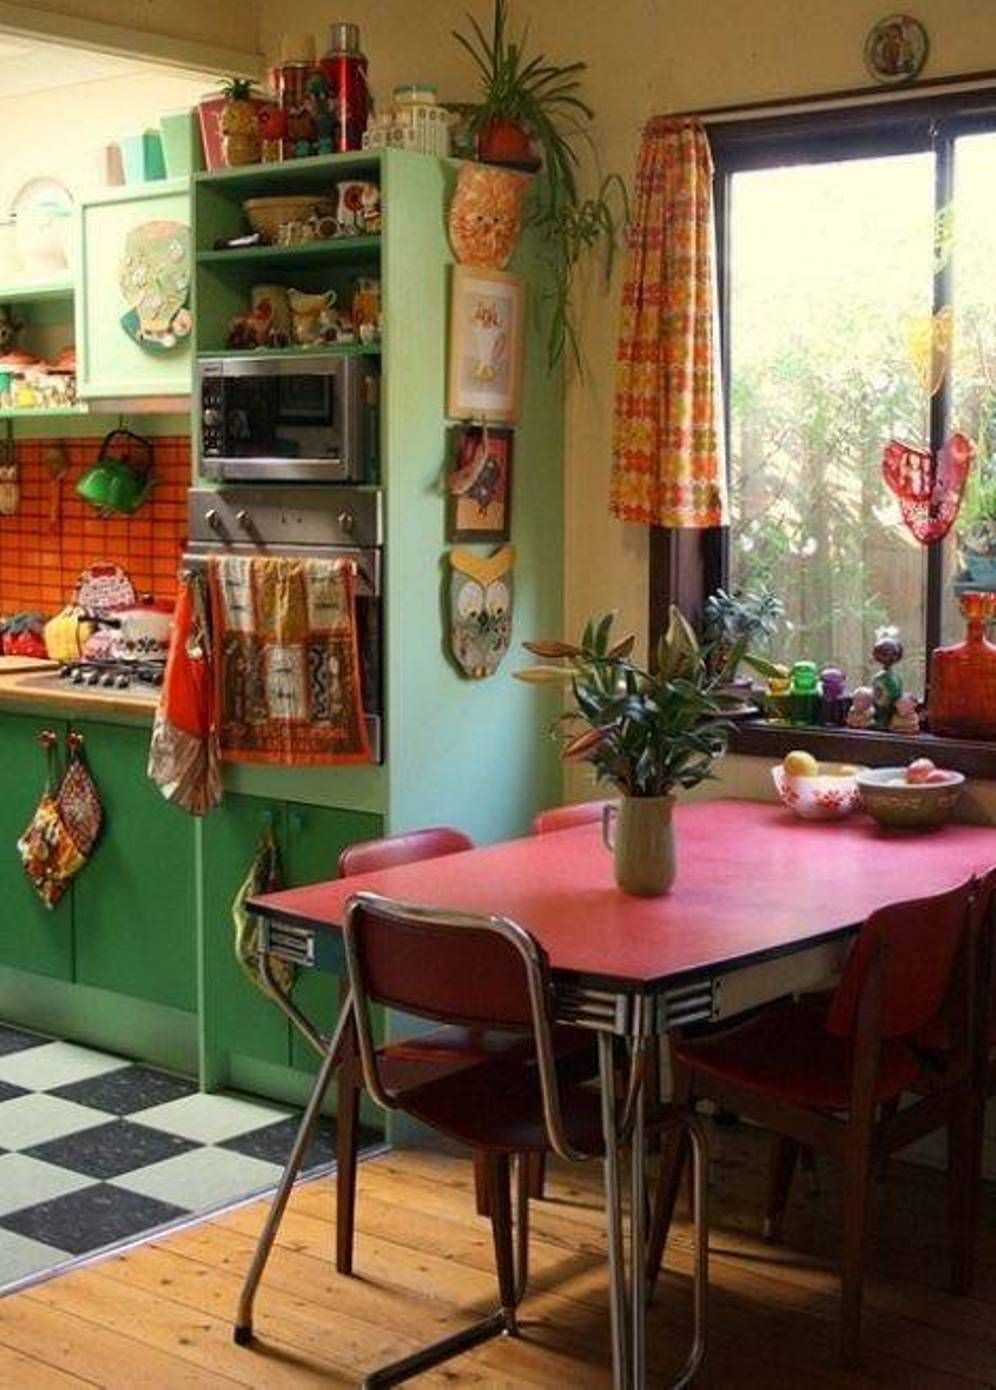 Vintage home interior pictures interior bohemian style for Antique home decoration